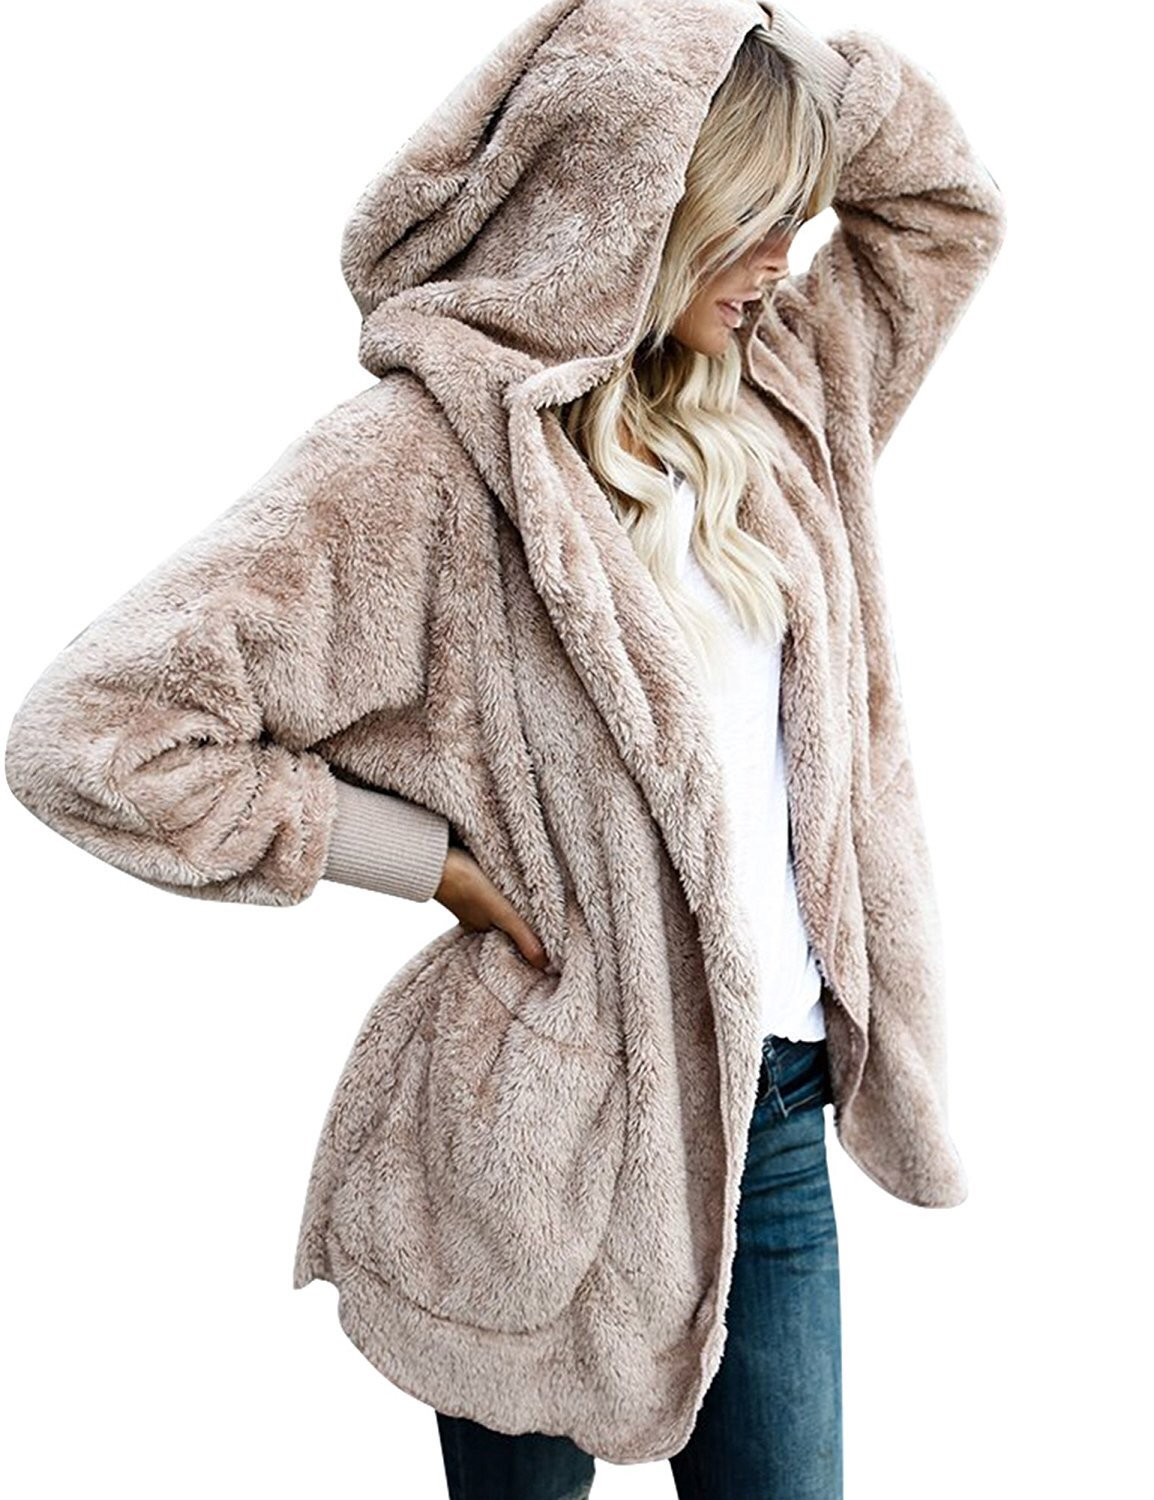 SVALIY Womens Fuzzy Fleece Loose Open Front Hooded Cardigan Coats Outwear Pockets Camel XL